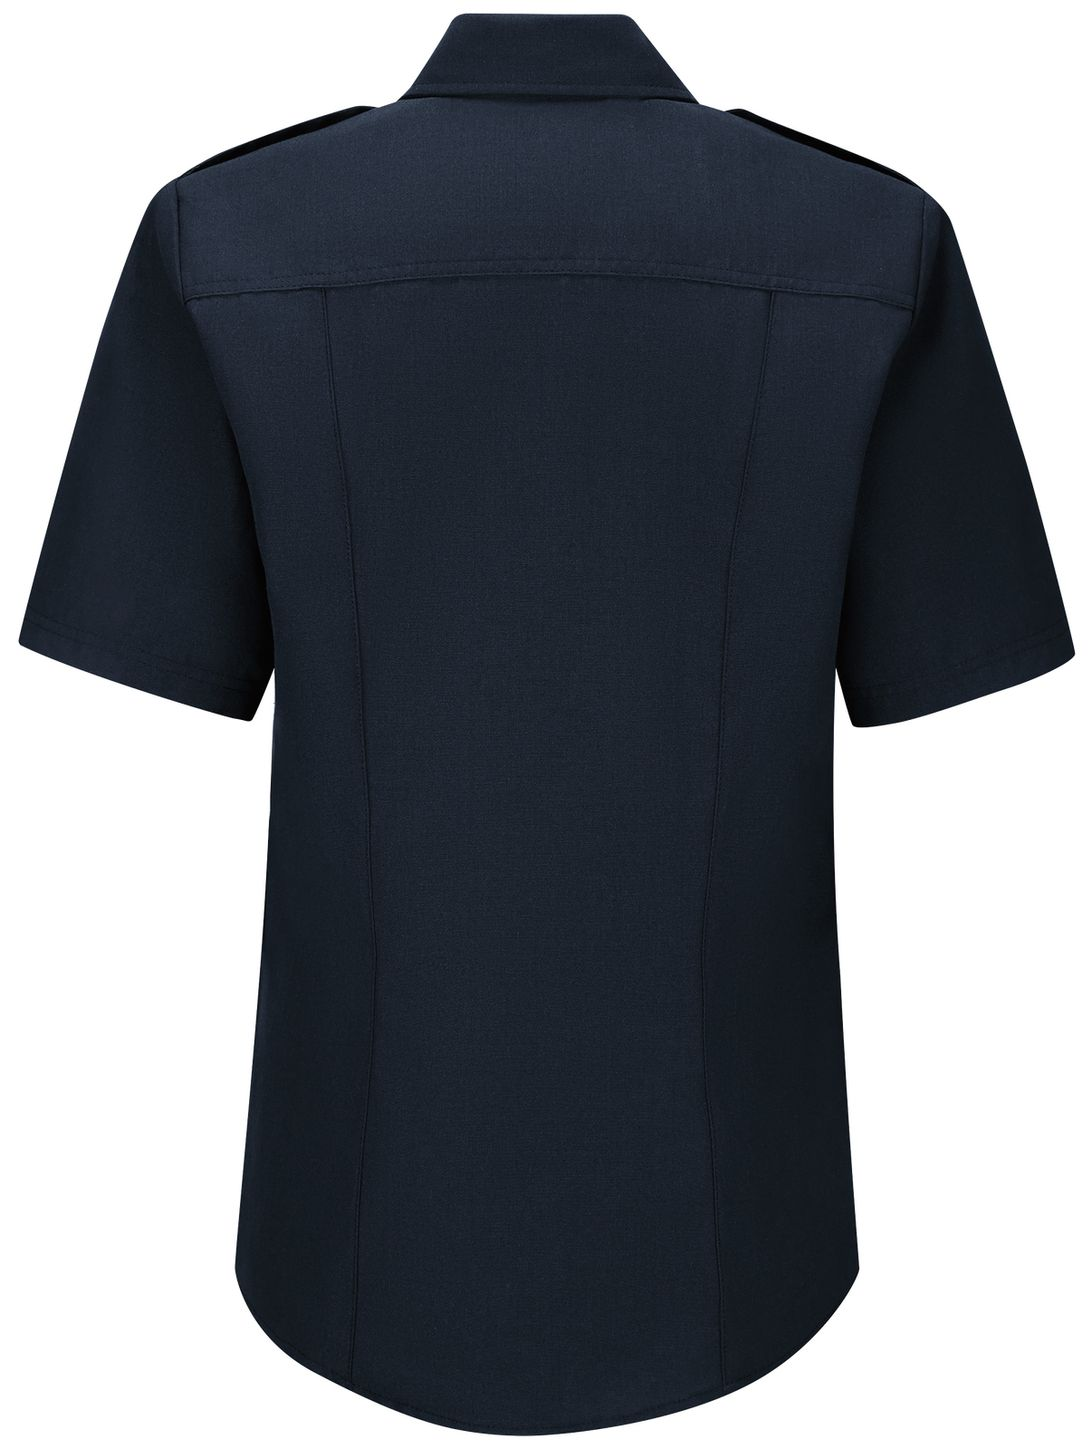 workrite-fr-women-s-chief-shirt-fsc7-classic-short-sleeve-midnight-navy-back.jpg